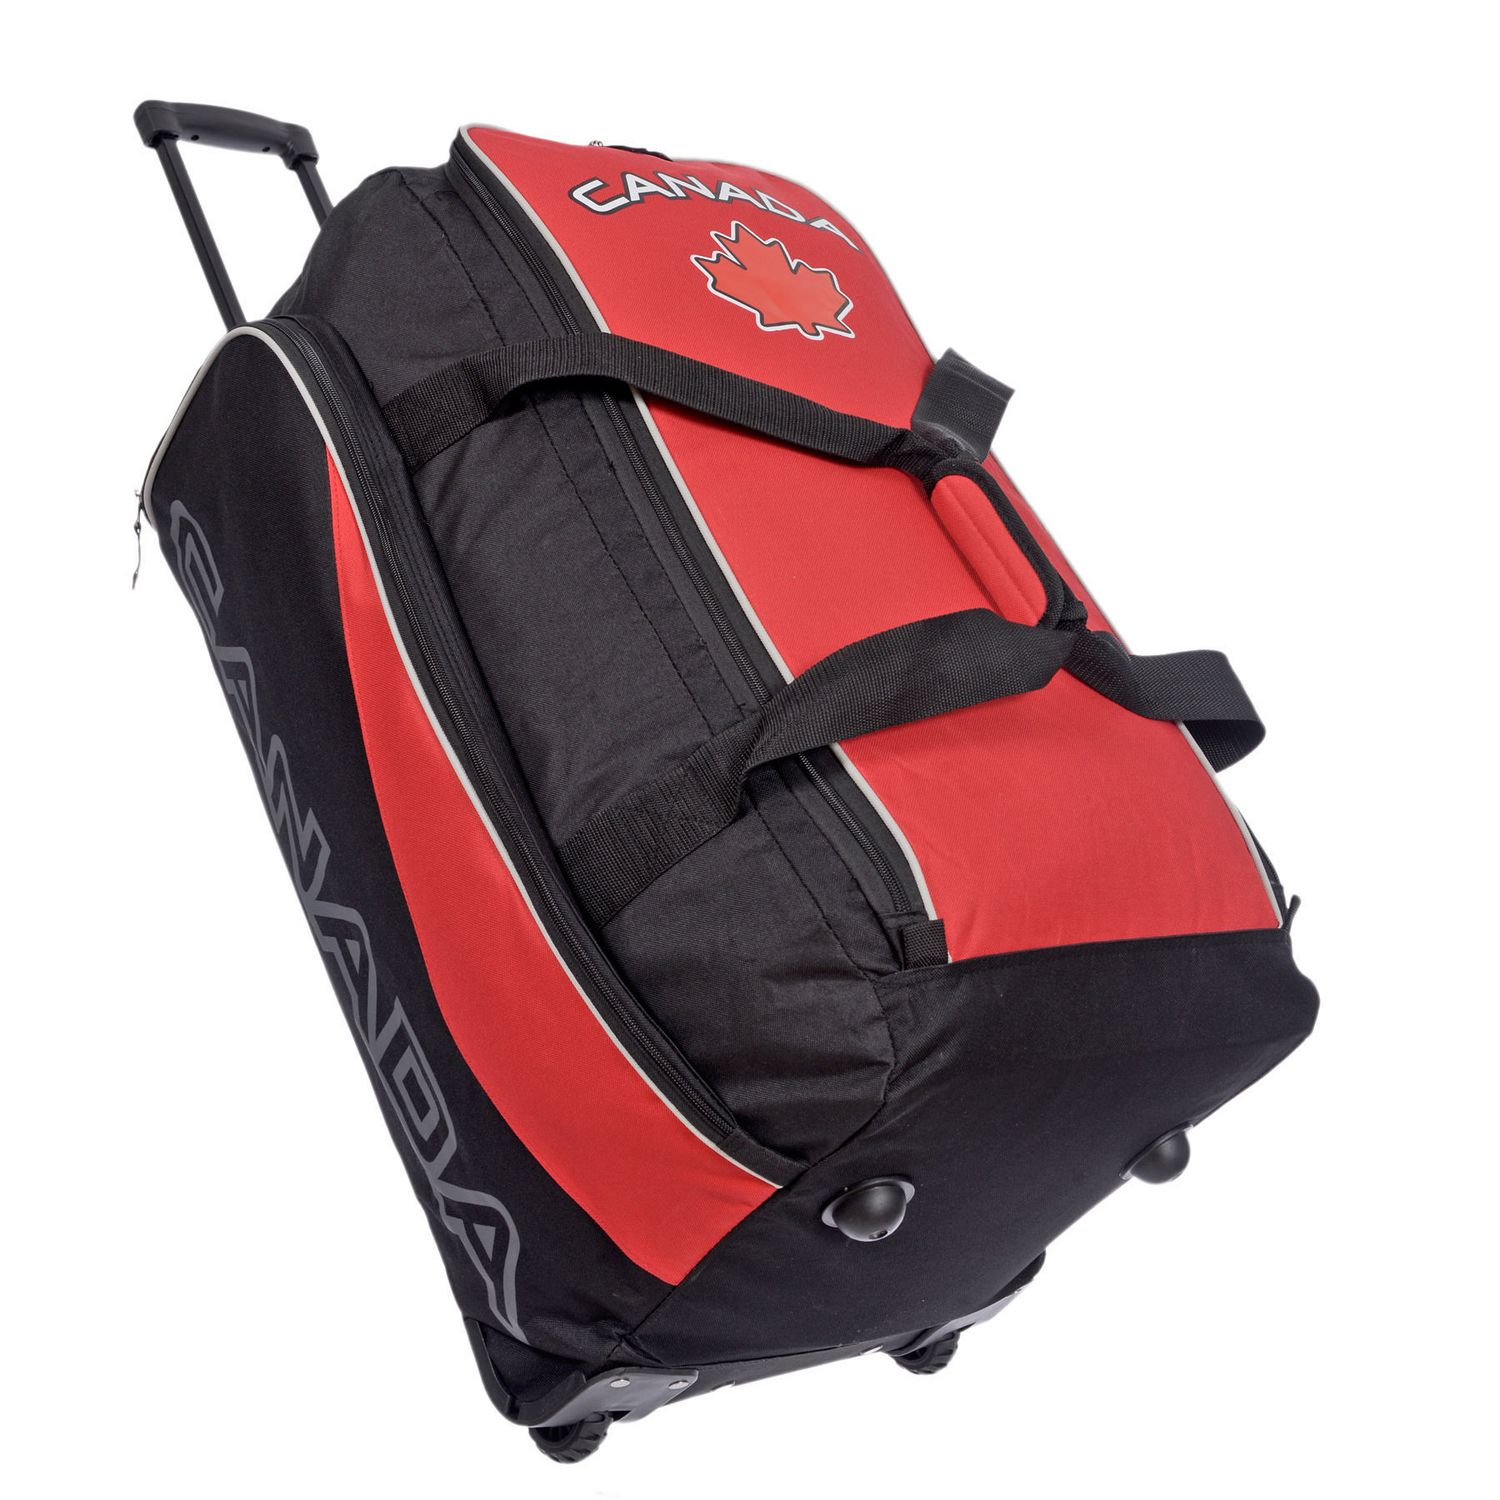 85c85dff93 Travel Duffle   Weekend Bags